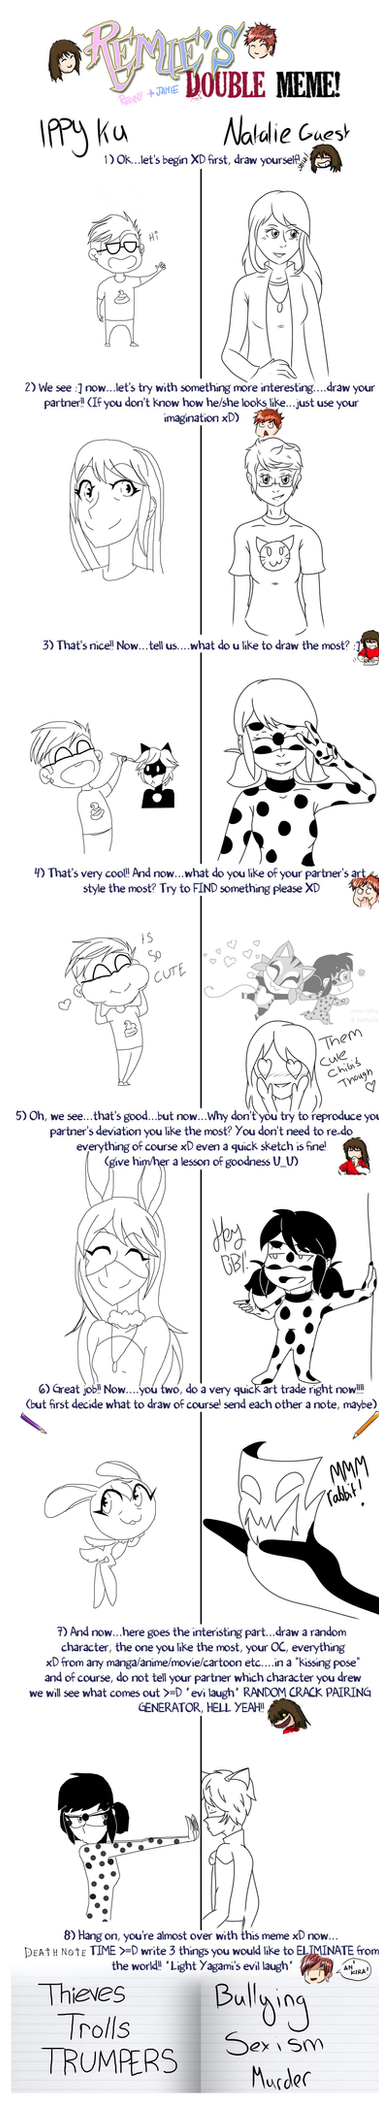 Remie's Double Meme: Natalie and Ippy by NatalieGuest